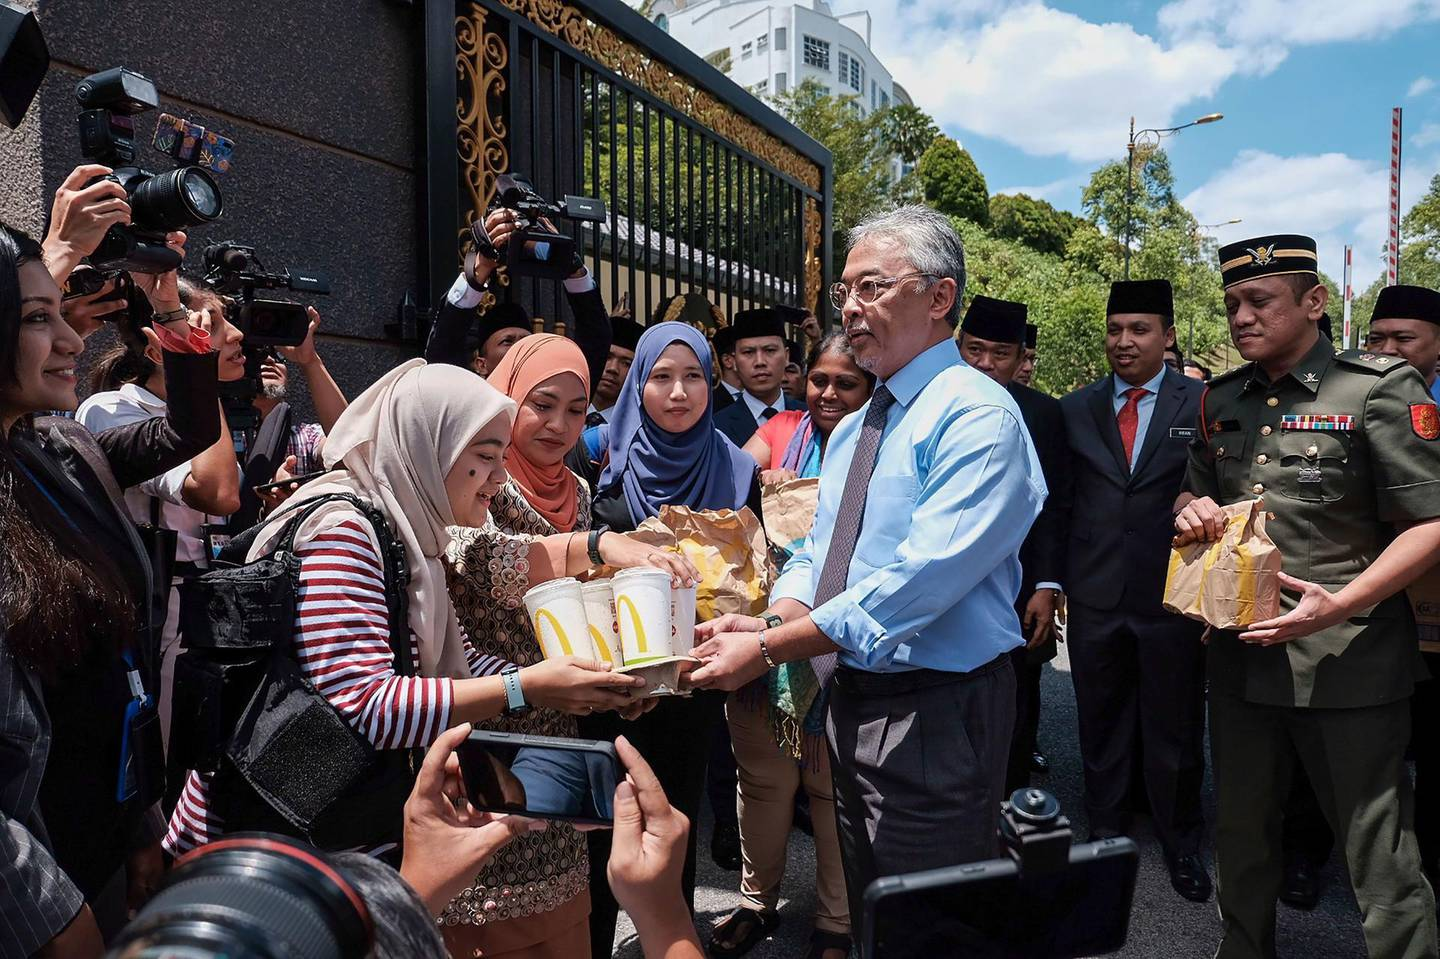 Malaysia's King Sultan Abdullah Sultan Ahmad Shah (centre R) hands out packages of fast food to reporters standing outside the National Palace in Kuala Lumpur on February 25, 2020. Intense political jockeying is underway to form a new government in Malaysia after Mahathir Mohamad, the world's oldest leader, resigned then was appointed interim leader. / AFP / Syaiful Redzuan